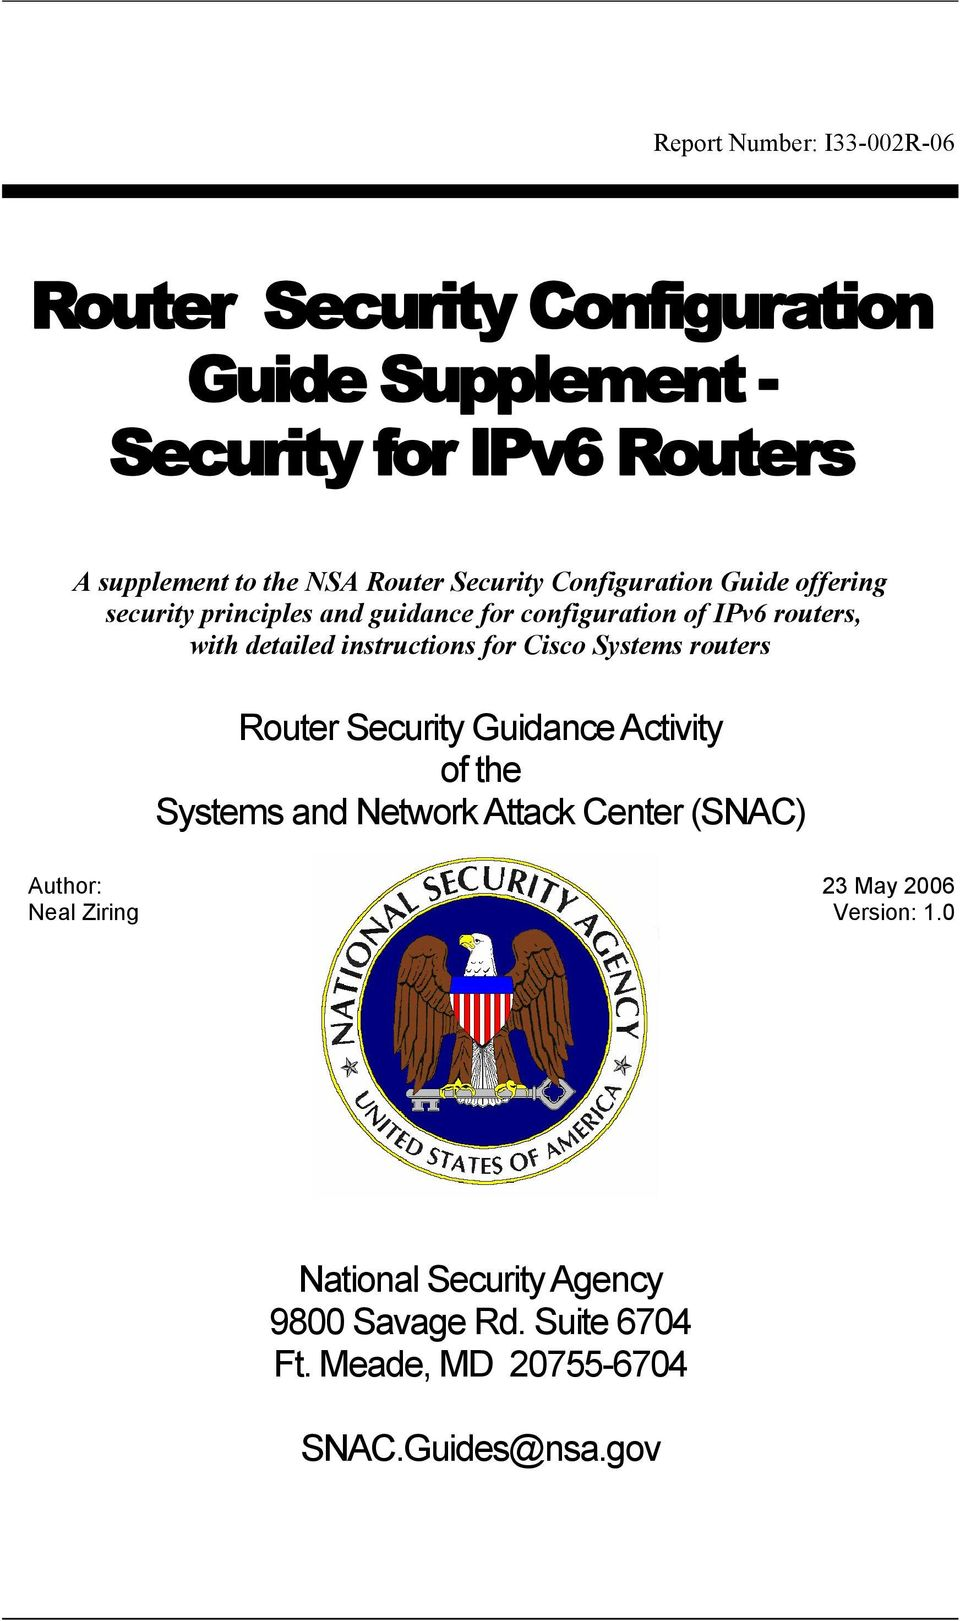 instructions for Cisco Systems routers Router Security Guidance Activity of the Systems and Network Attack Center (SNAC)